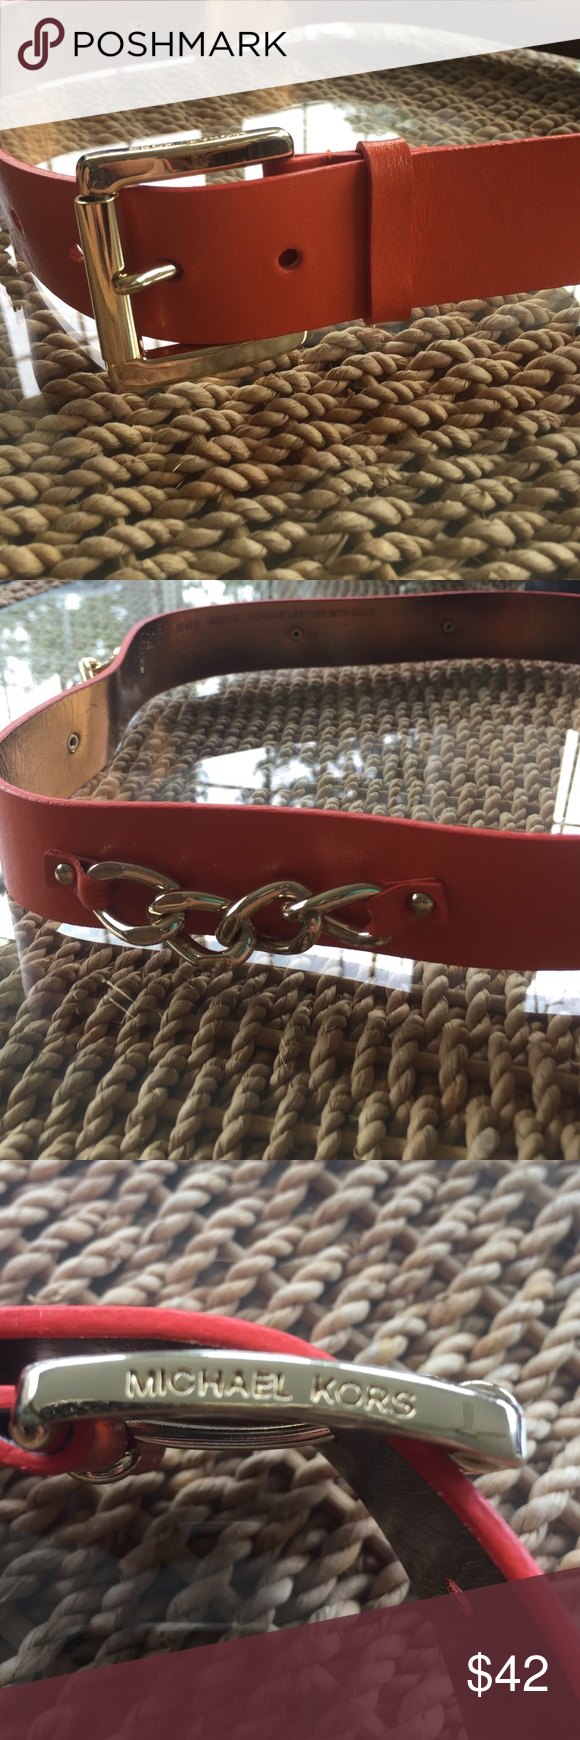 🍾SALE✨ Michael Kors Belt This belt is in impeccable condition. I have worn it once. The chain detail makes it beautify to belt a dress with or to wear with white skinnies for a pop of color! Sadly it doesn't fit me anymore. Michael Kors Accessories Belts